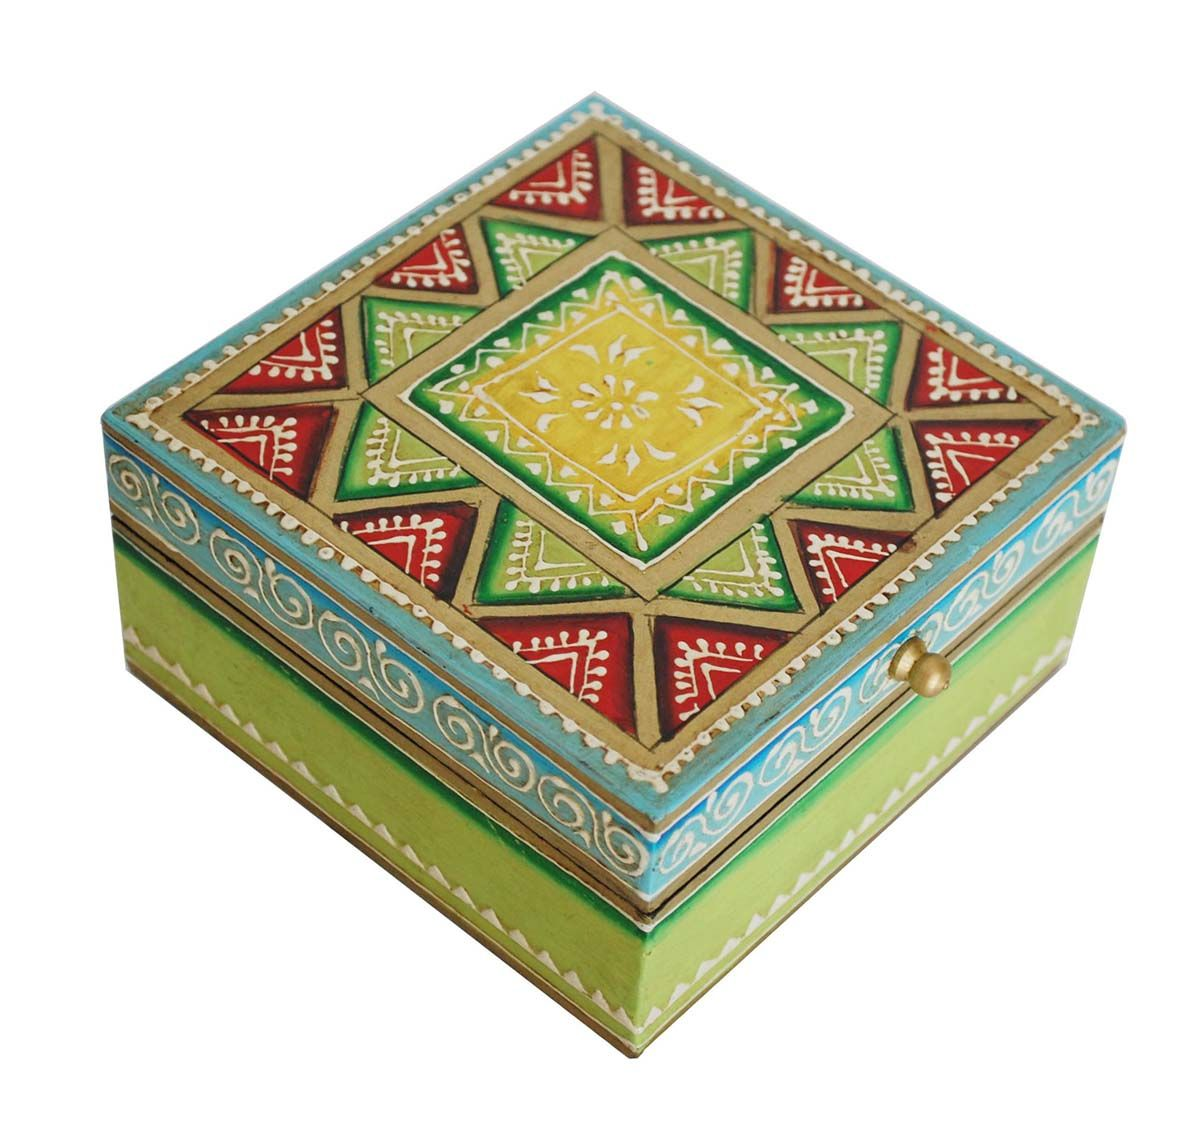 Treasured Legacy Hand Painted 5x5 Wooden Jewelry Trinket box